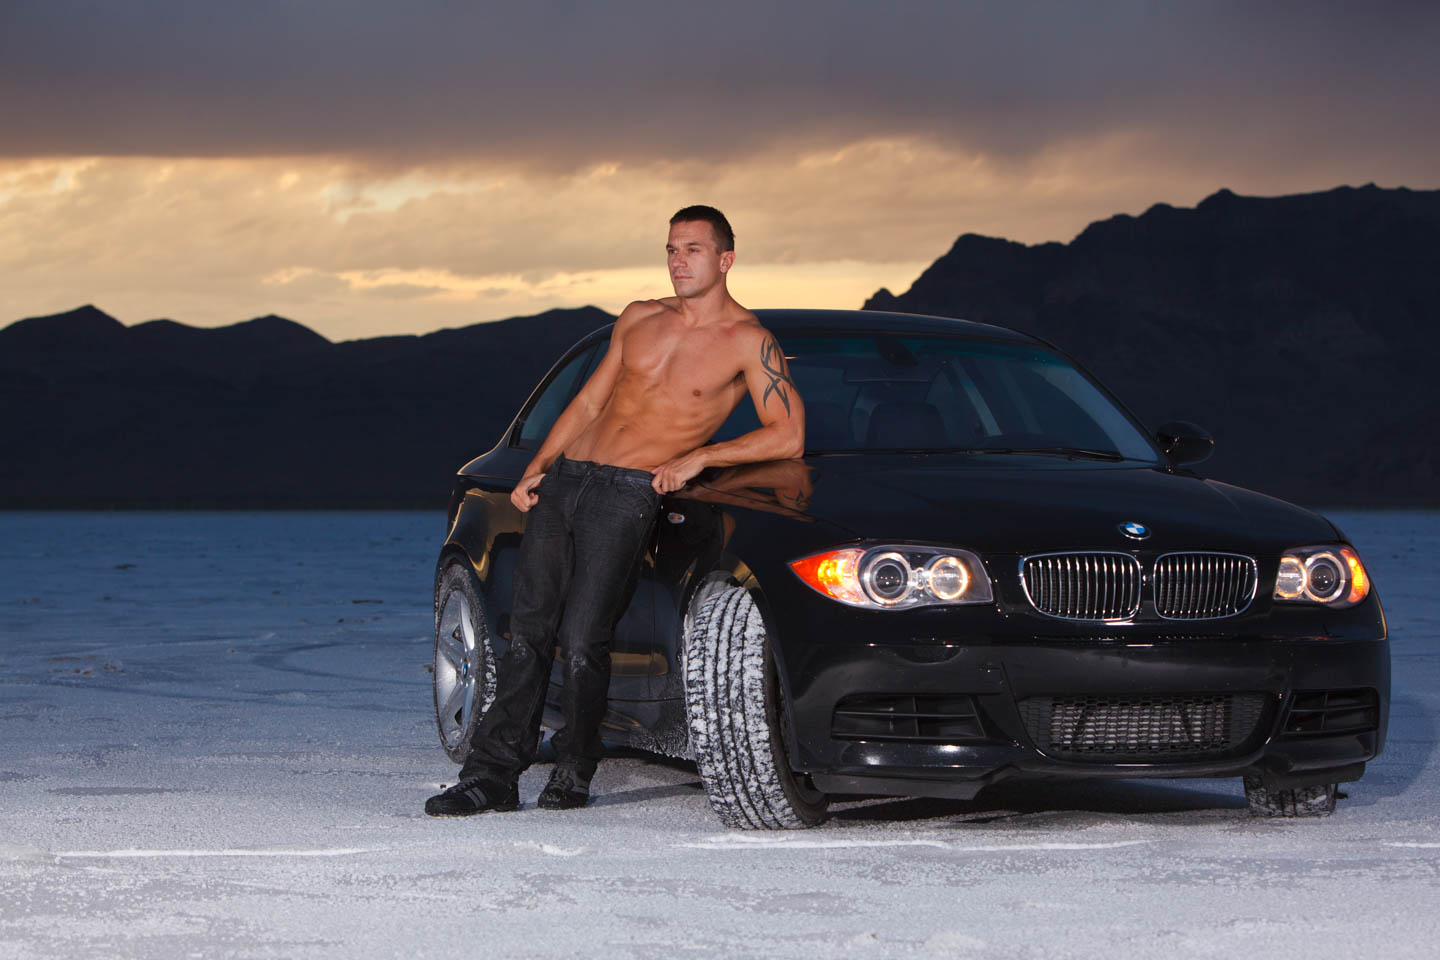 Jacob and his BMW on the Bonneville Salt Flats